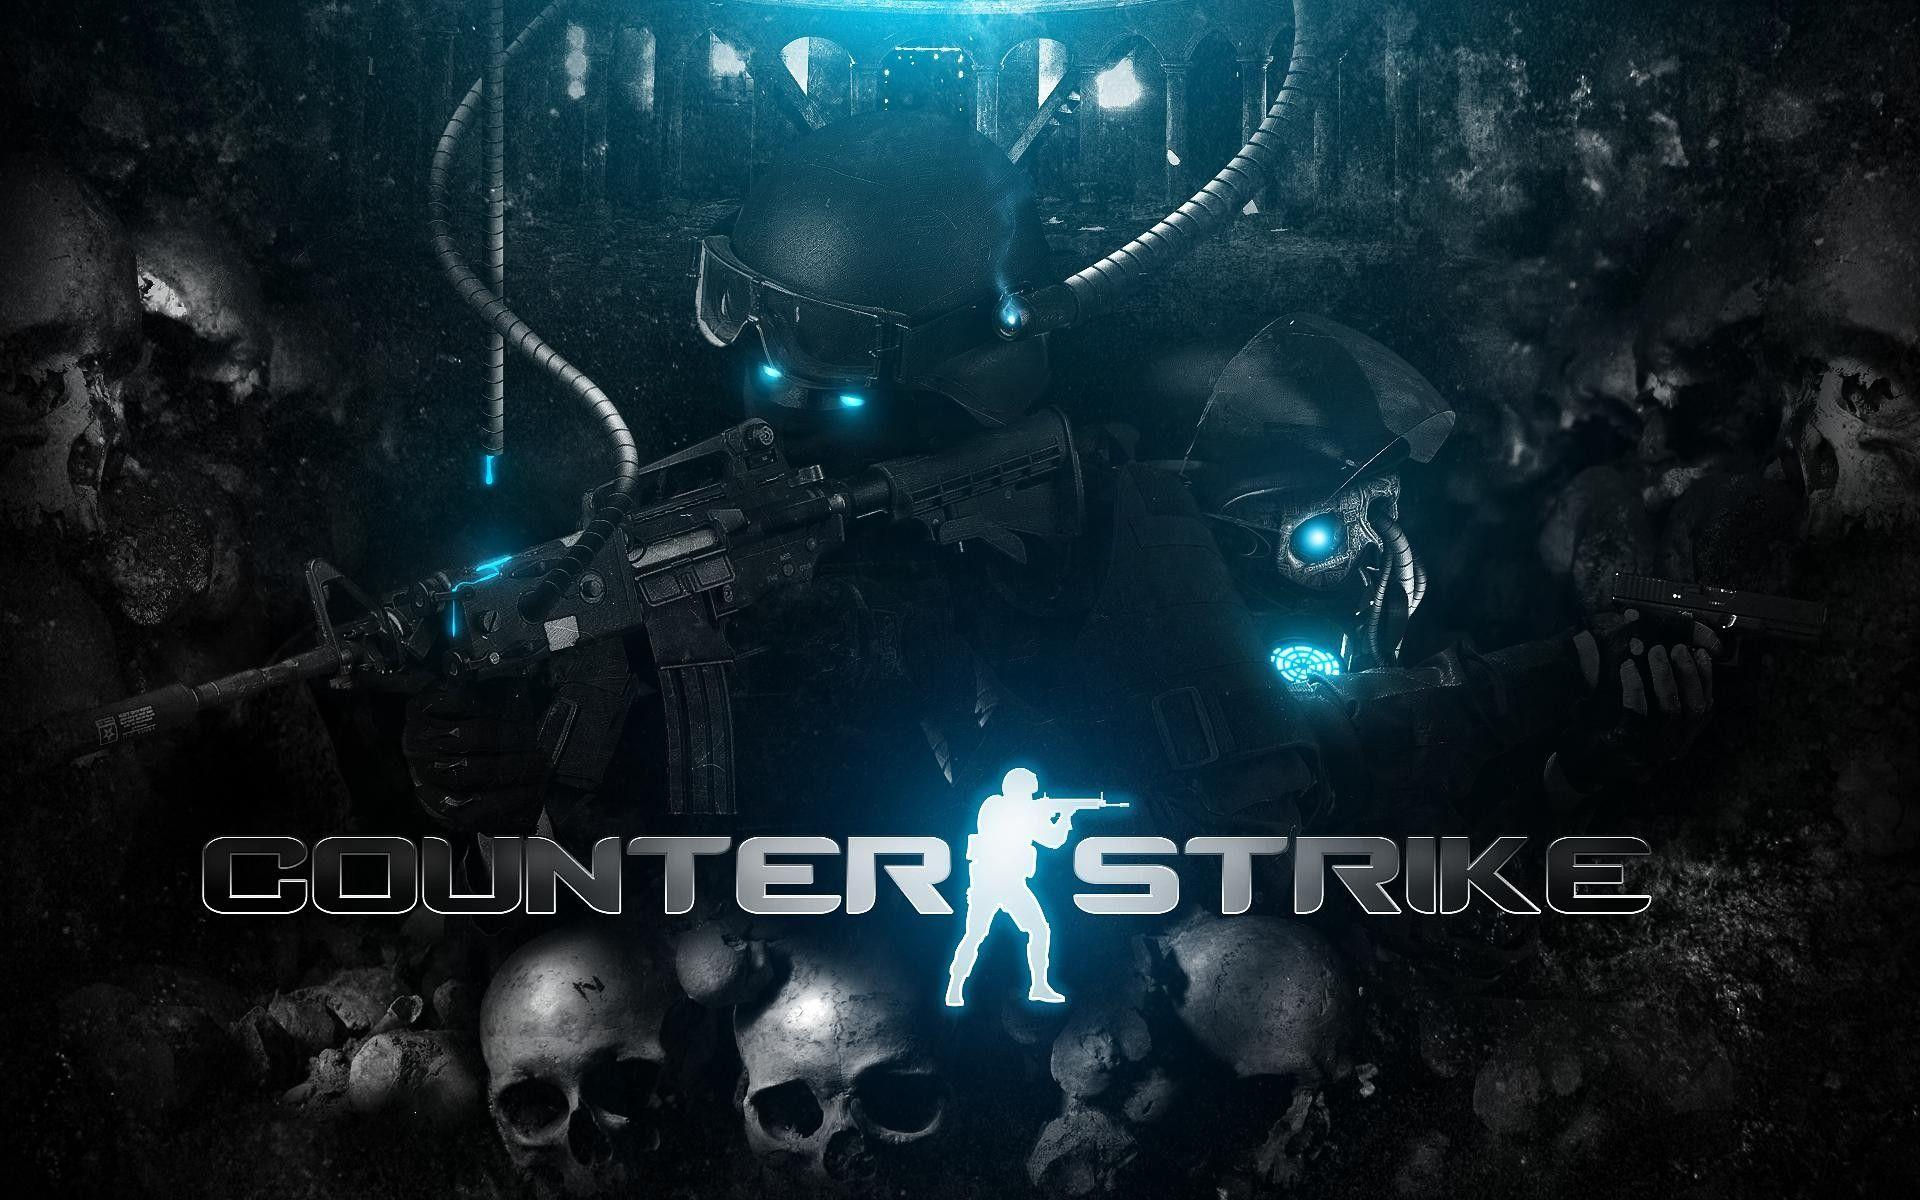 Counter Strike wallpaper ·① Download free beautiful full HD ...